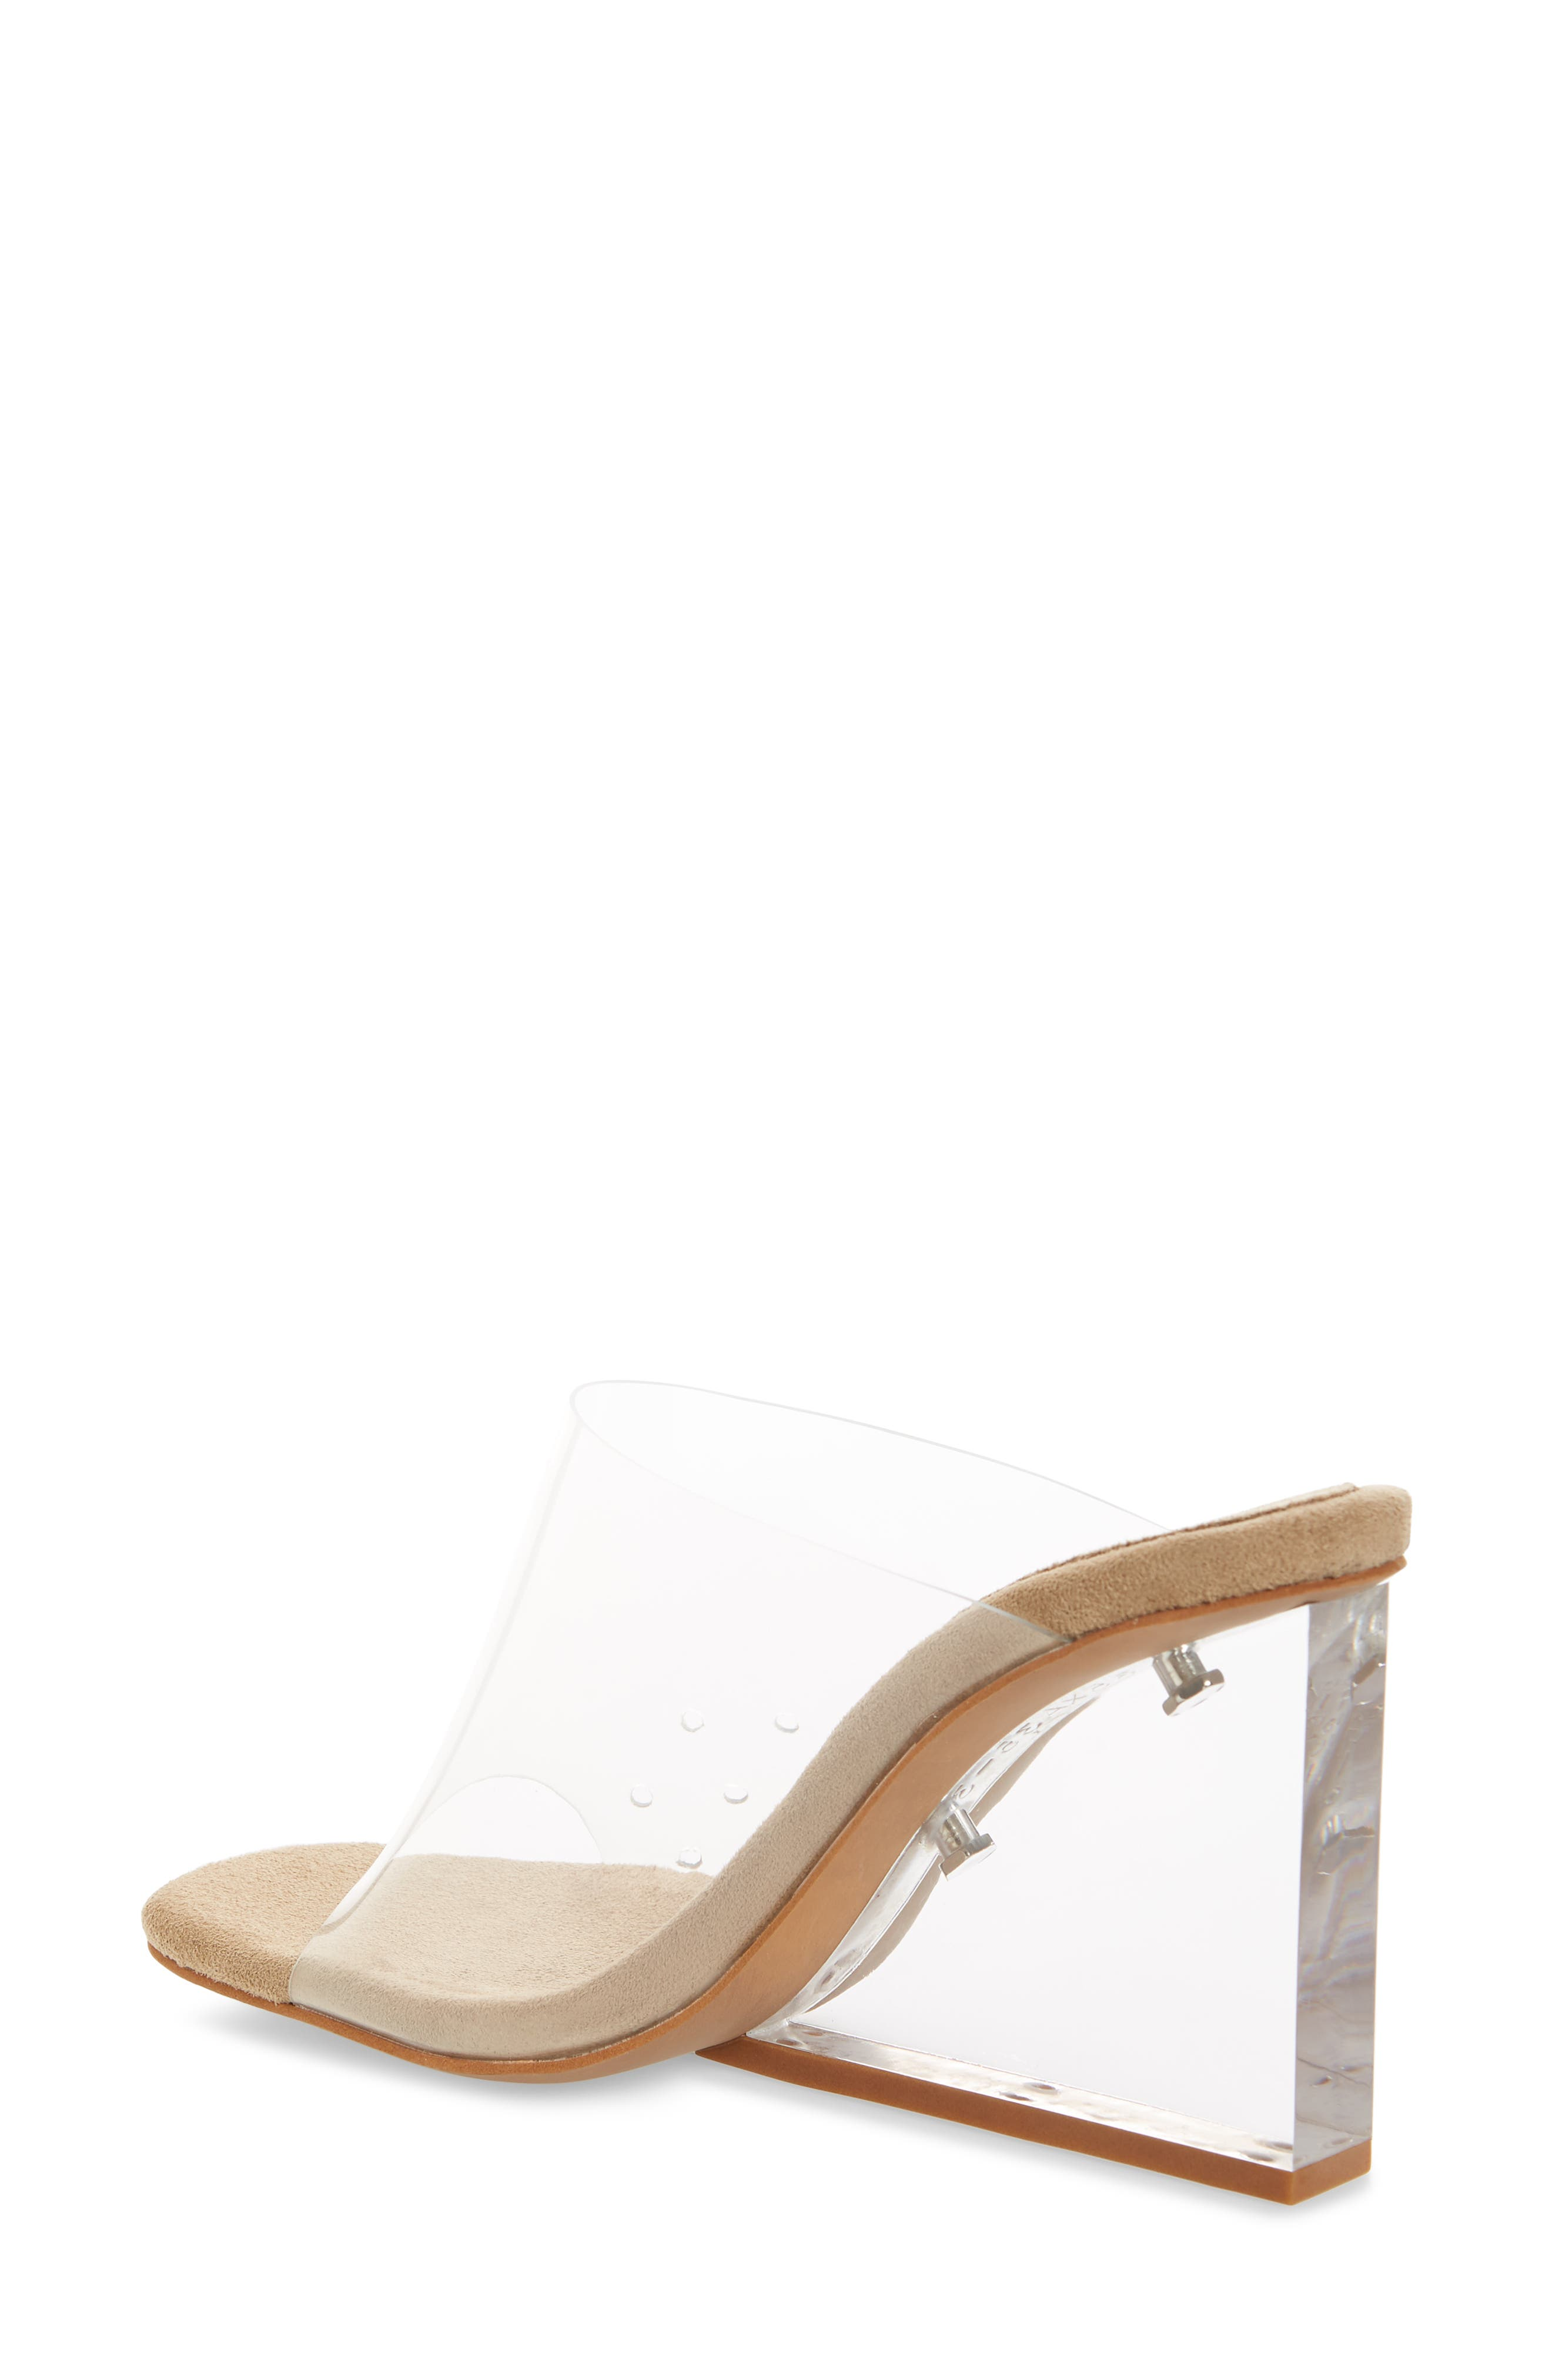 JEFFREY CAMPBELL, Clear Wedge Mule, Alternate thumbnail 2, color, CLEAR FAUX LEATHER